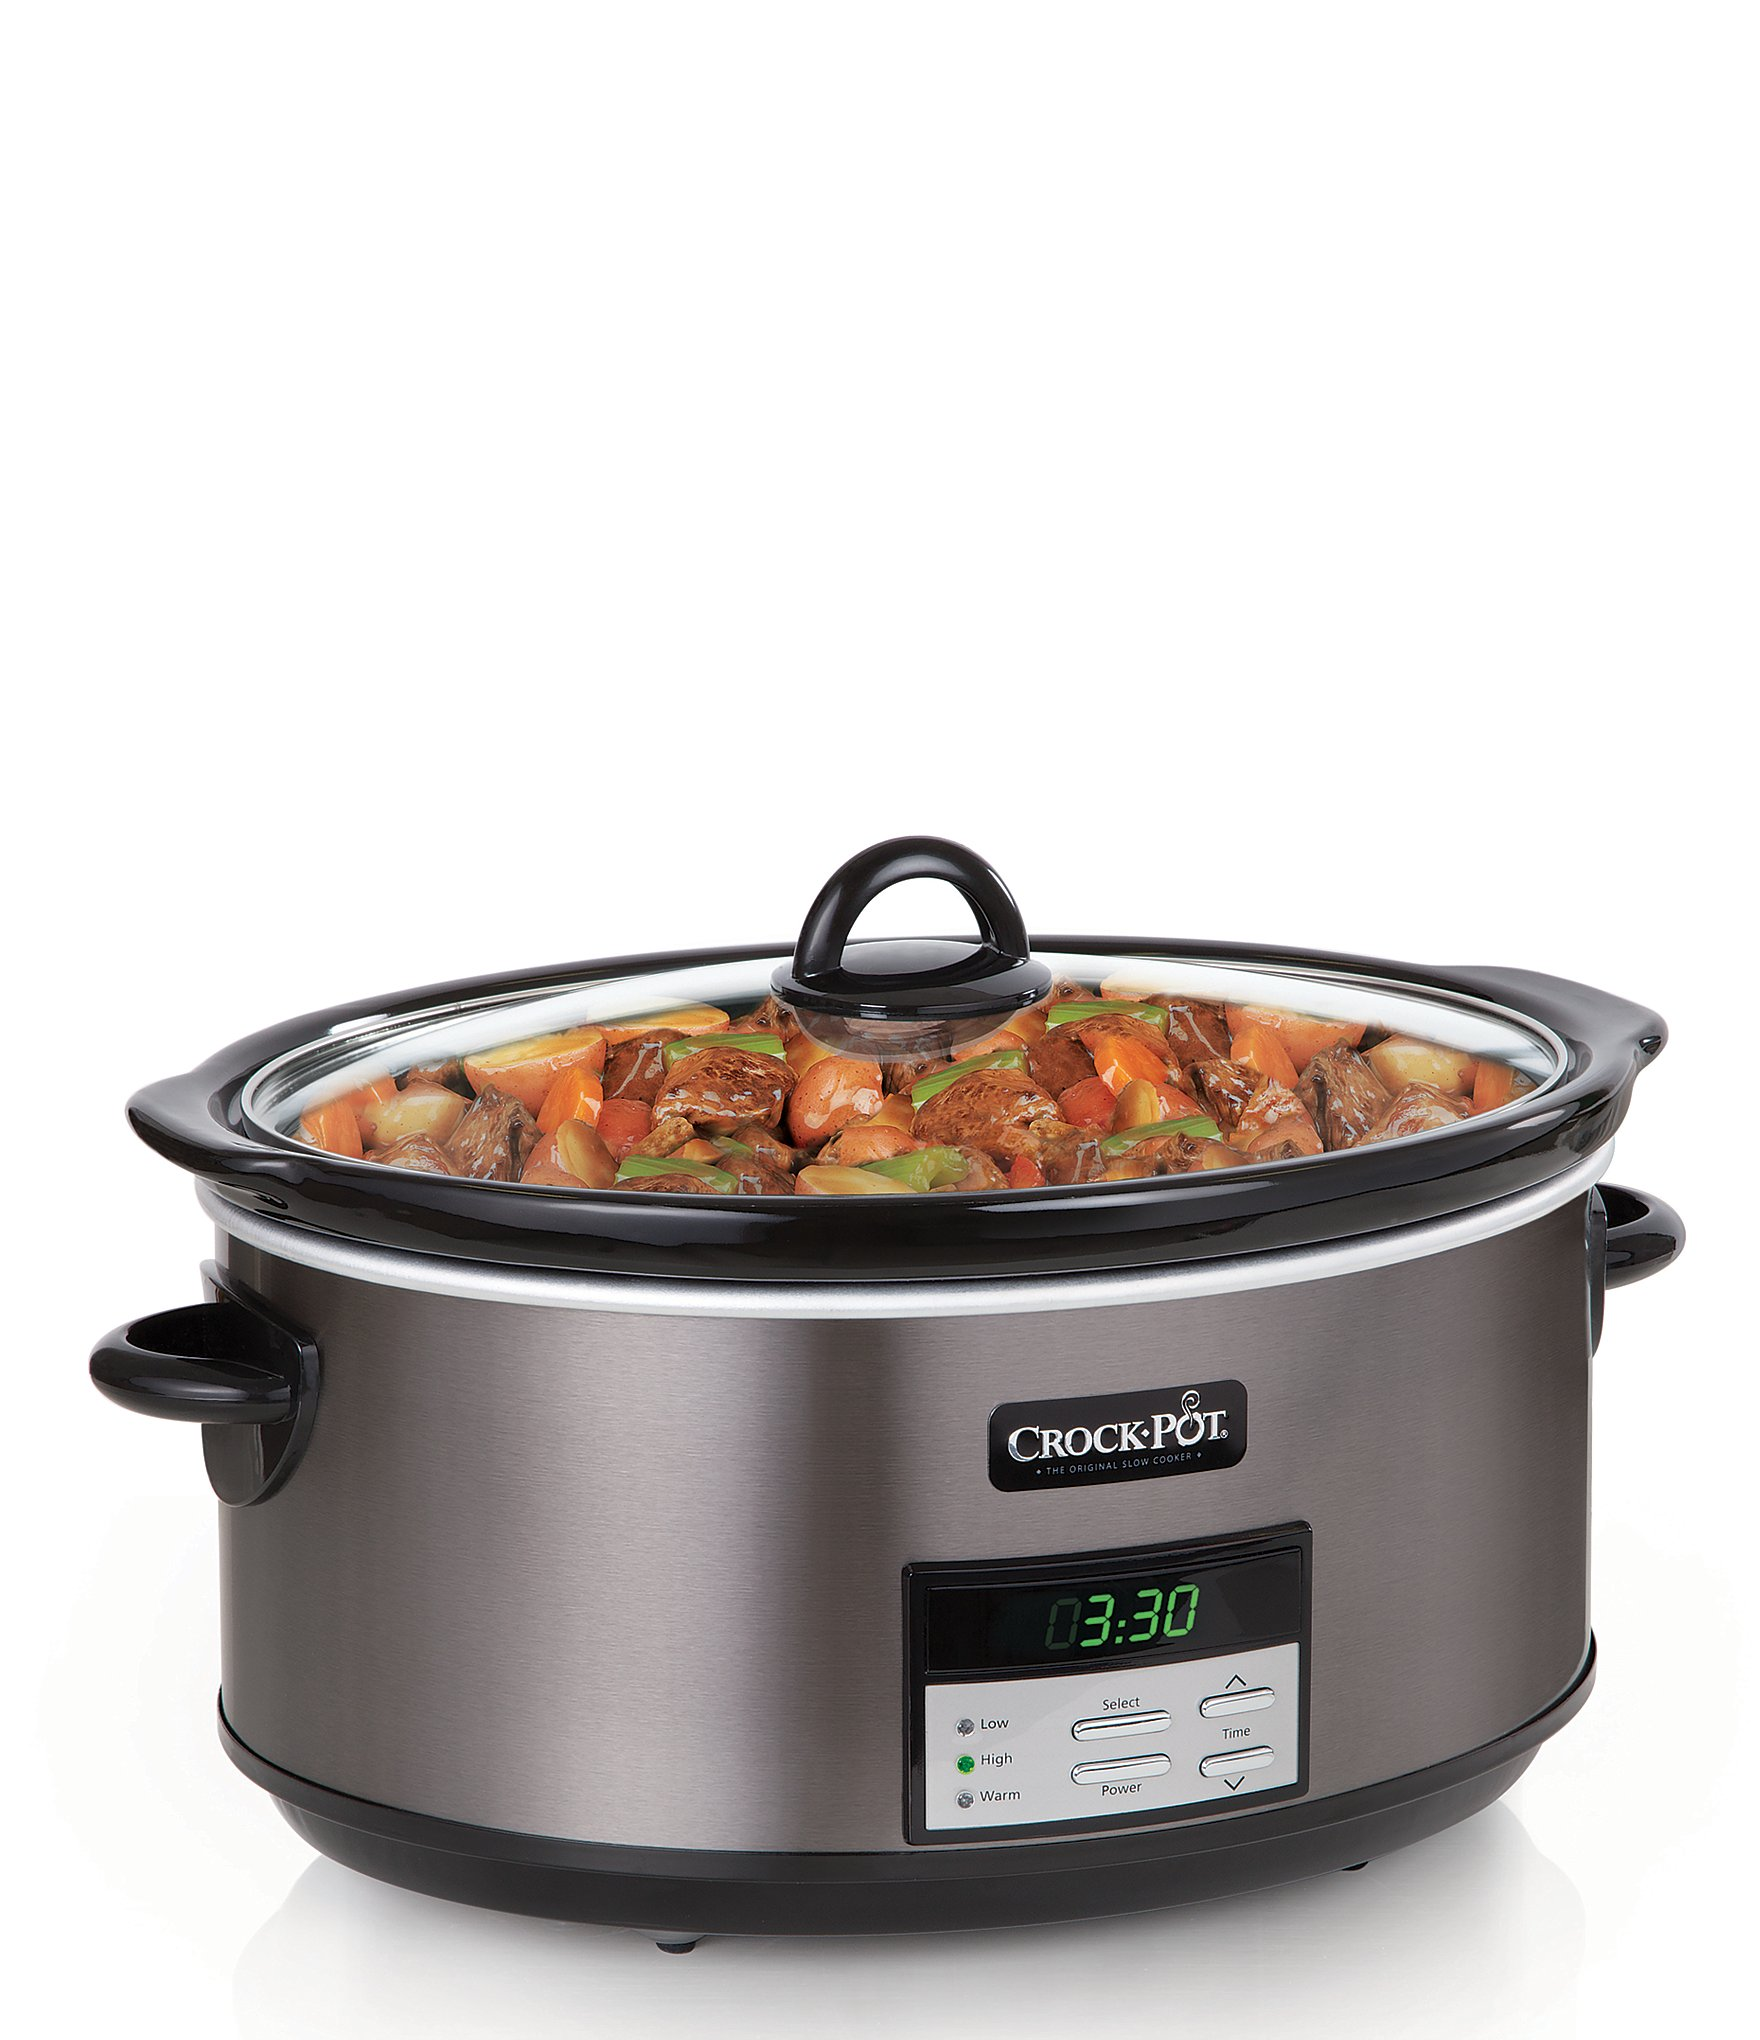 Crock PotCrock Pot Stainless Collection 8 Quart Programmable Slow Cooker